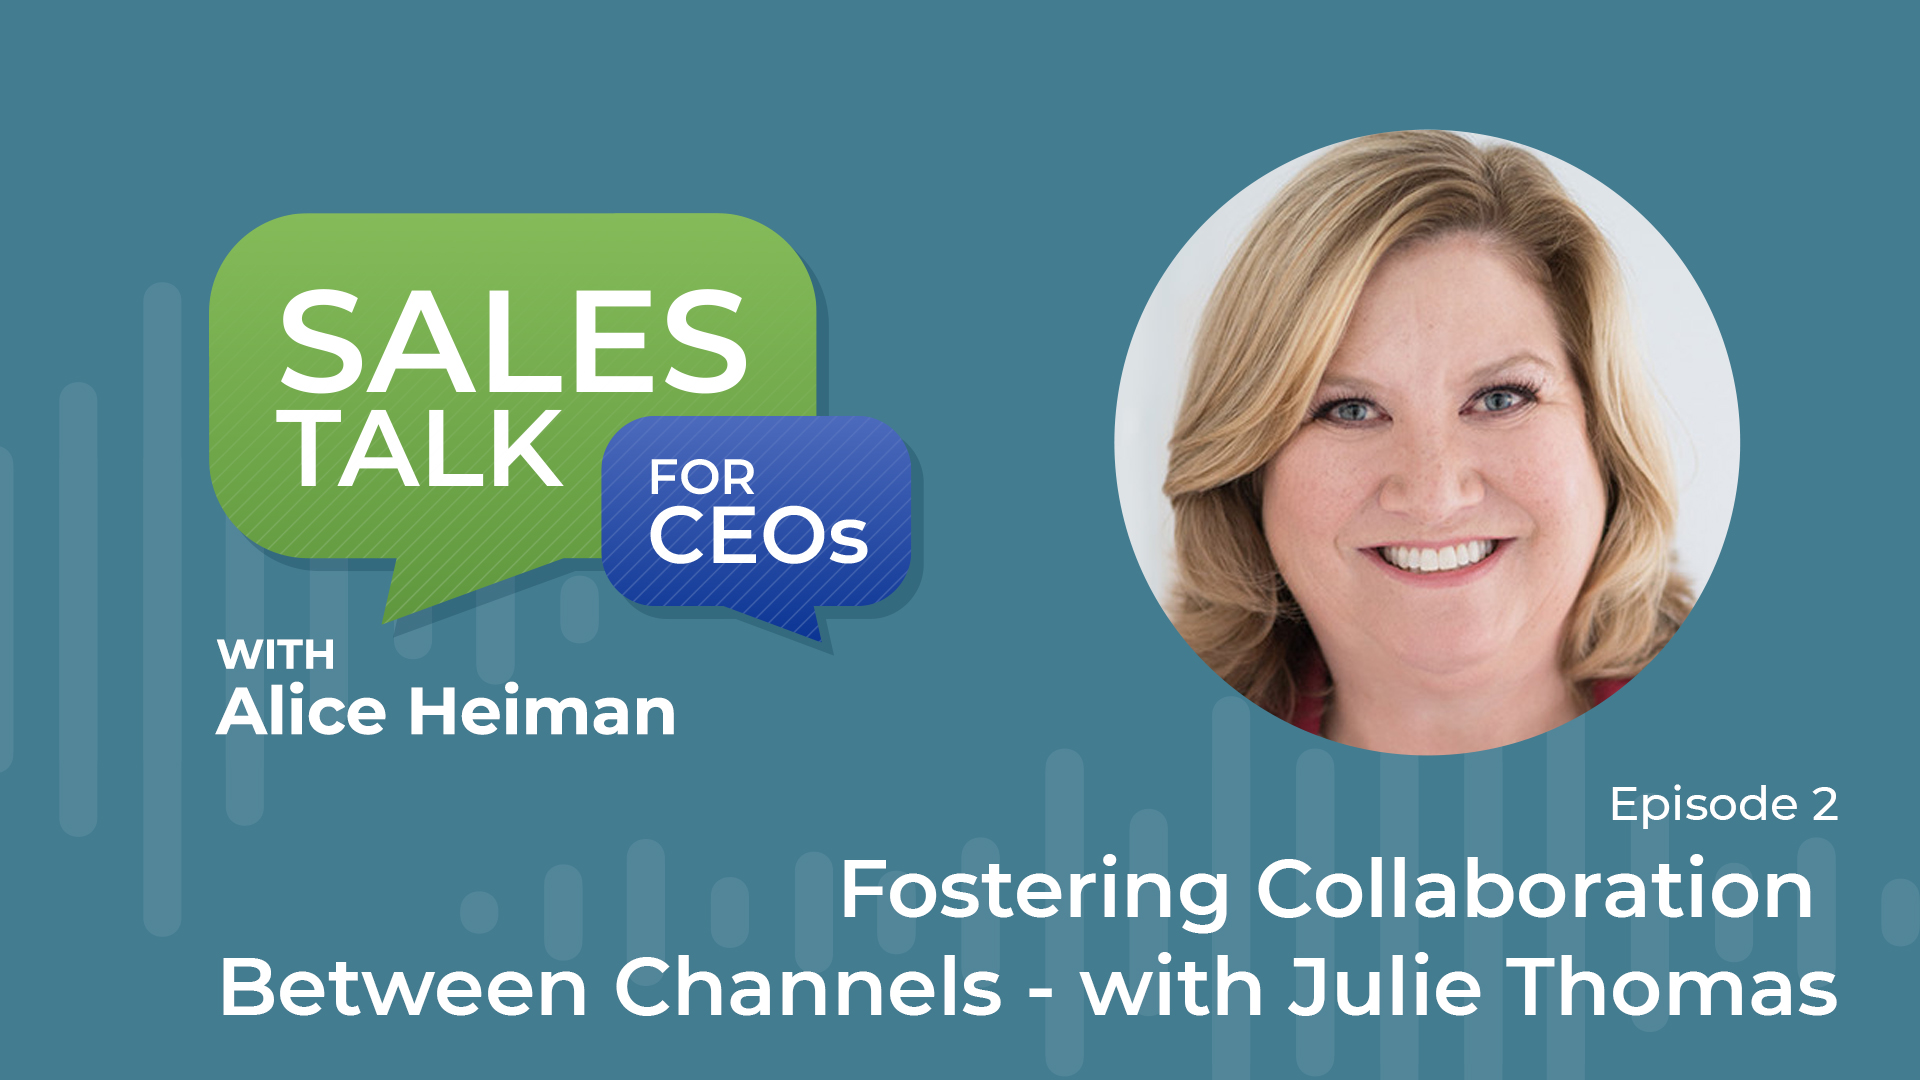 Sales Talk for CEOs: Fostering Collaboration Between Channels with Julie Thomas